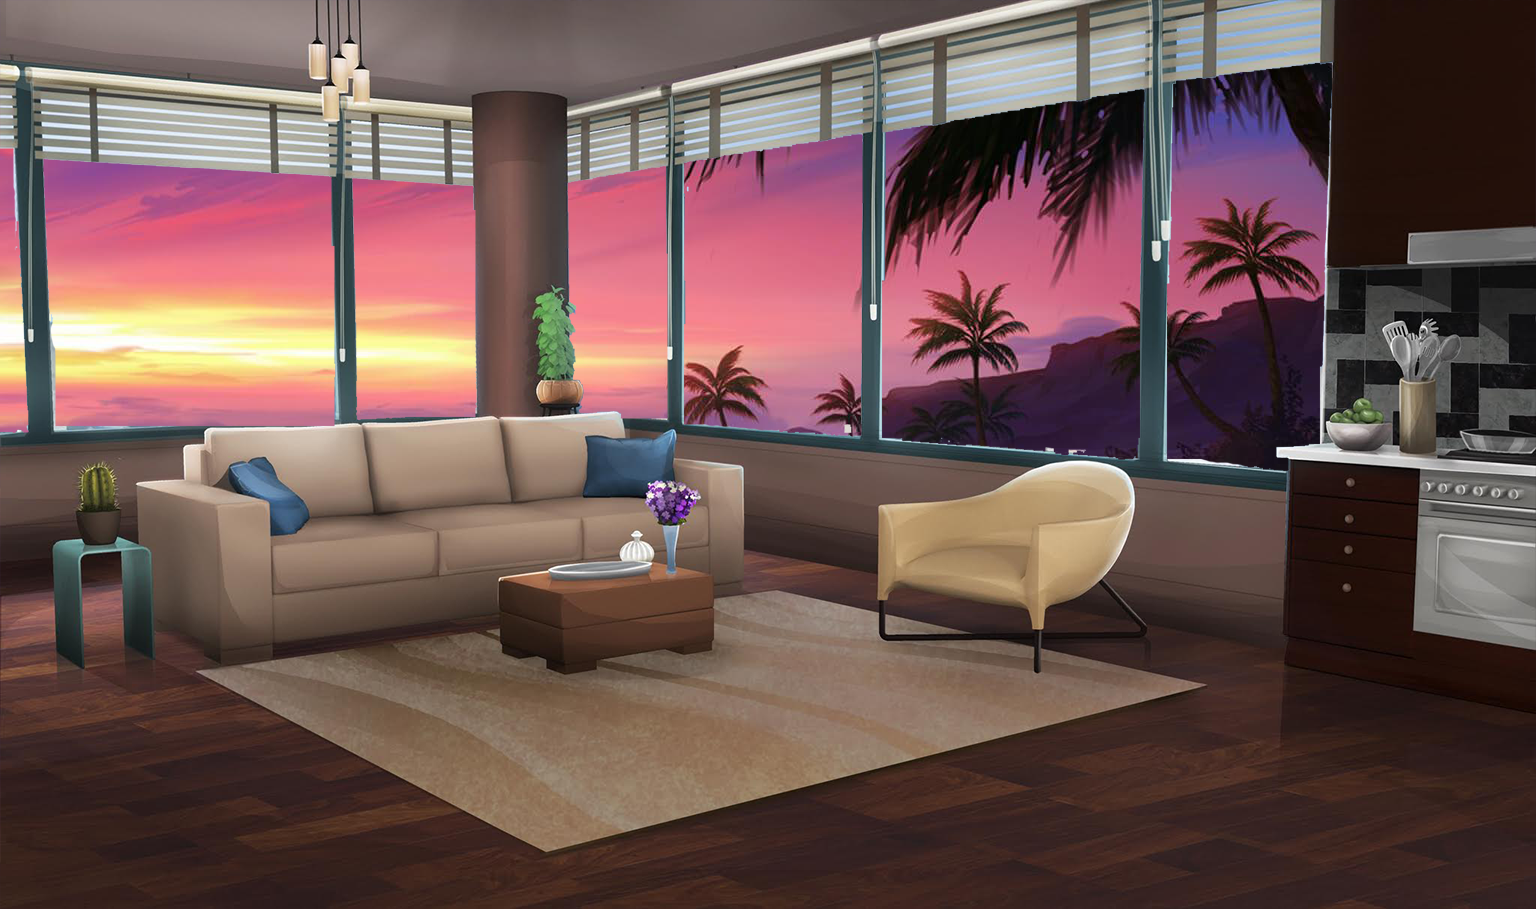 INT. HOT TUB ROOM SUNSET OPEN NIGHT Episode Life INT